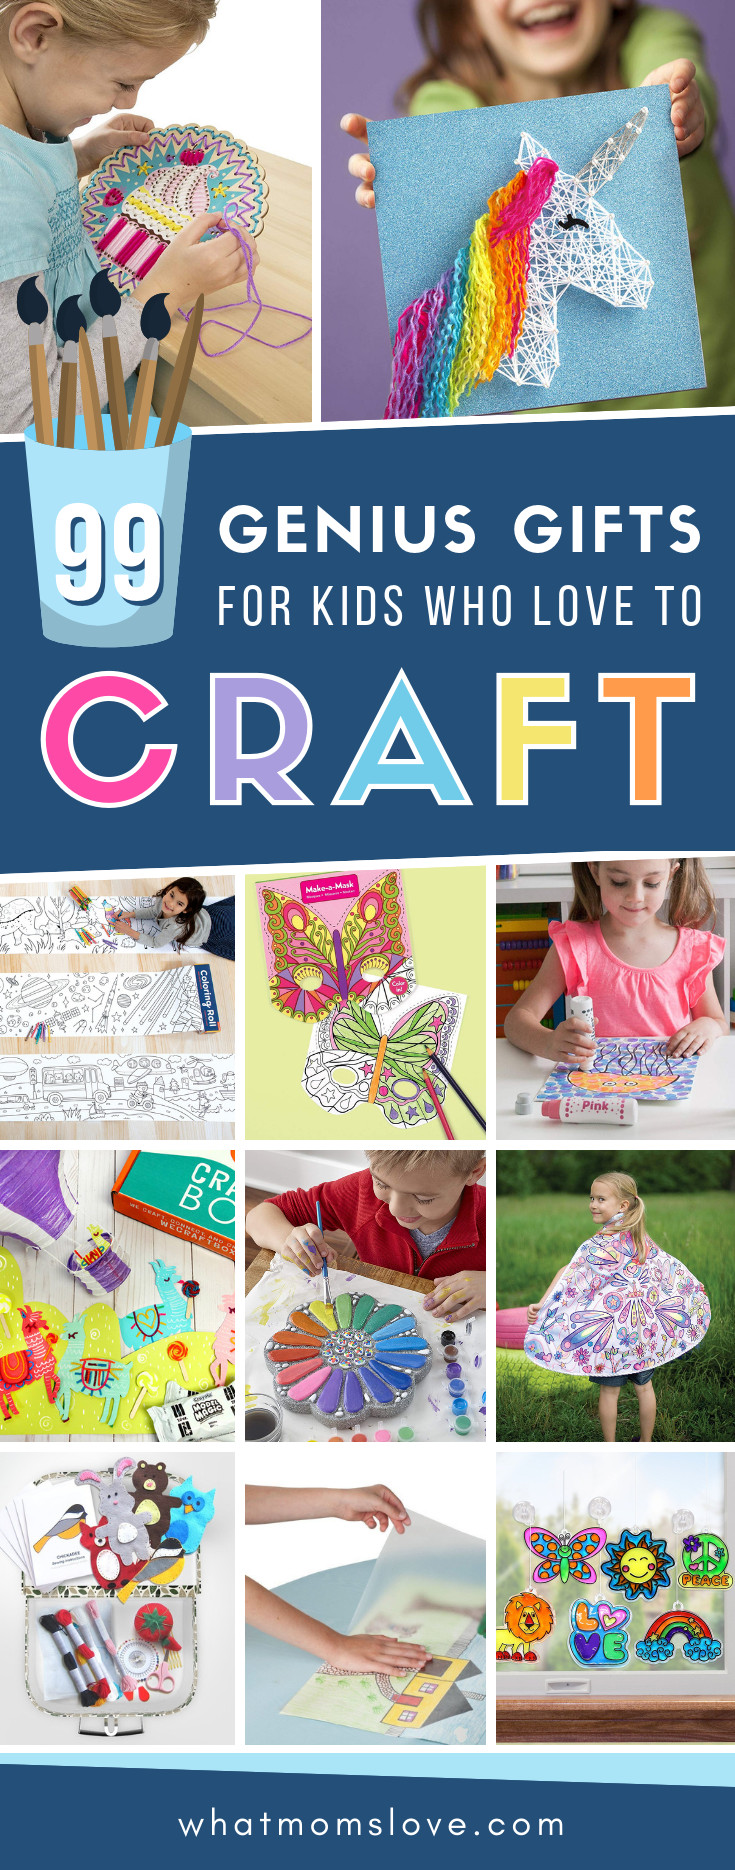 Best ideas about Best Kids Art . Save or Pin The Best Arts and Crafts Gifts for Kids Now.